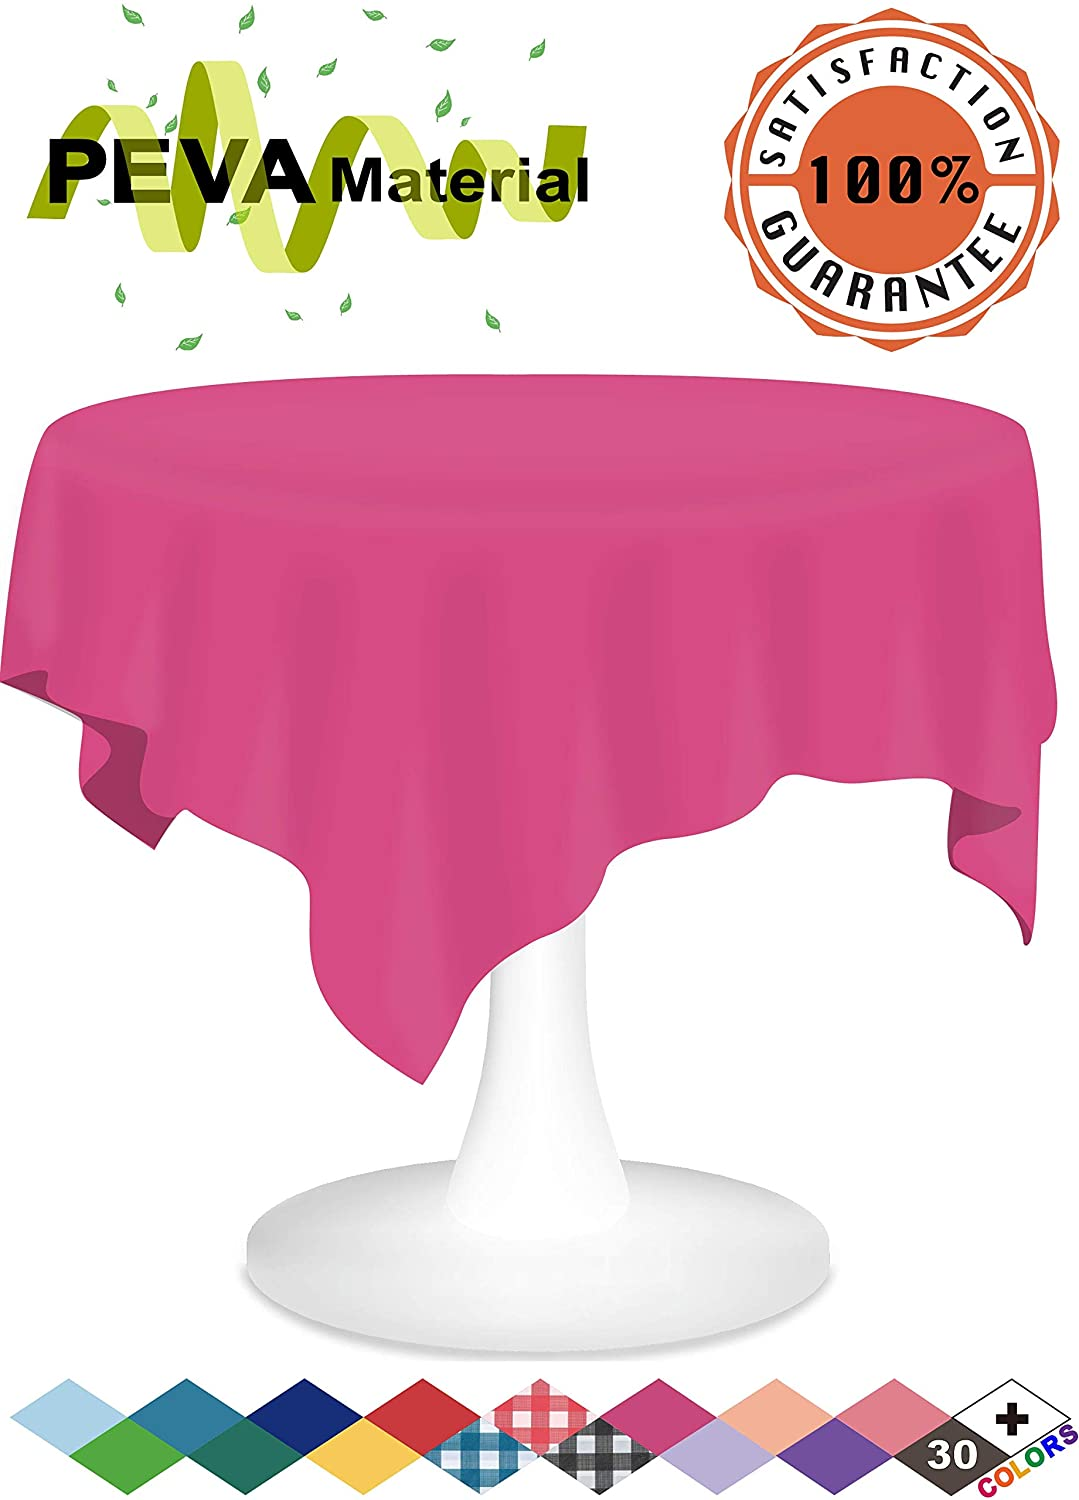 Hot Pink Plastic Tablecloth 3 Pack Cerise Disposable Table Covers 84 Inches Circle Shower Party Tablecovers PEVA Vinyl Table Cloths for Round Tables up to 6 ft and Picnic BBQ Birthday Wedding Banquet